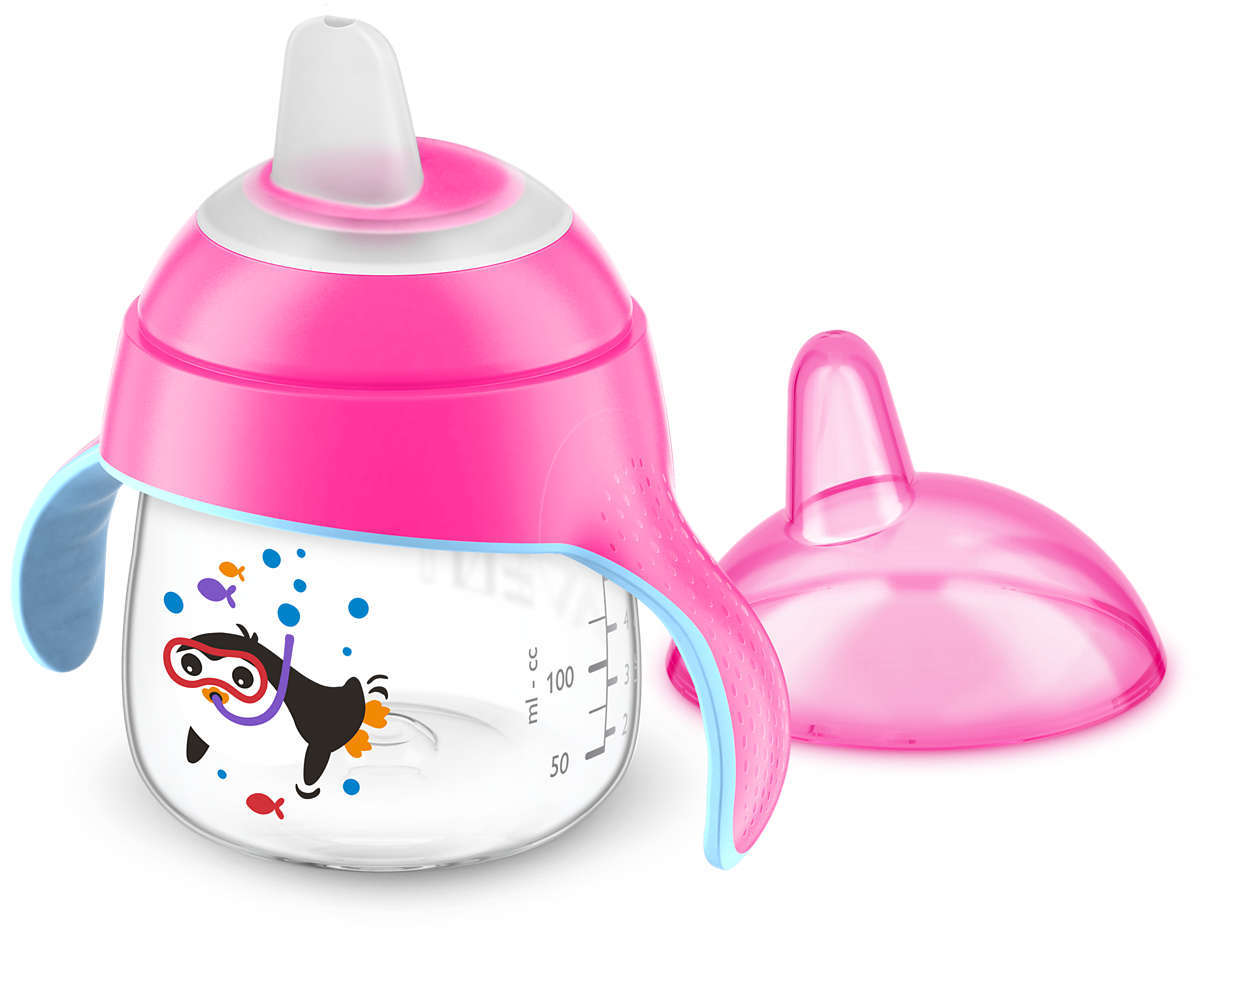 Philips Avent Sip, No Drip Cup - 200ml 6m+ (Pink) image